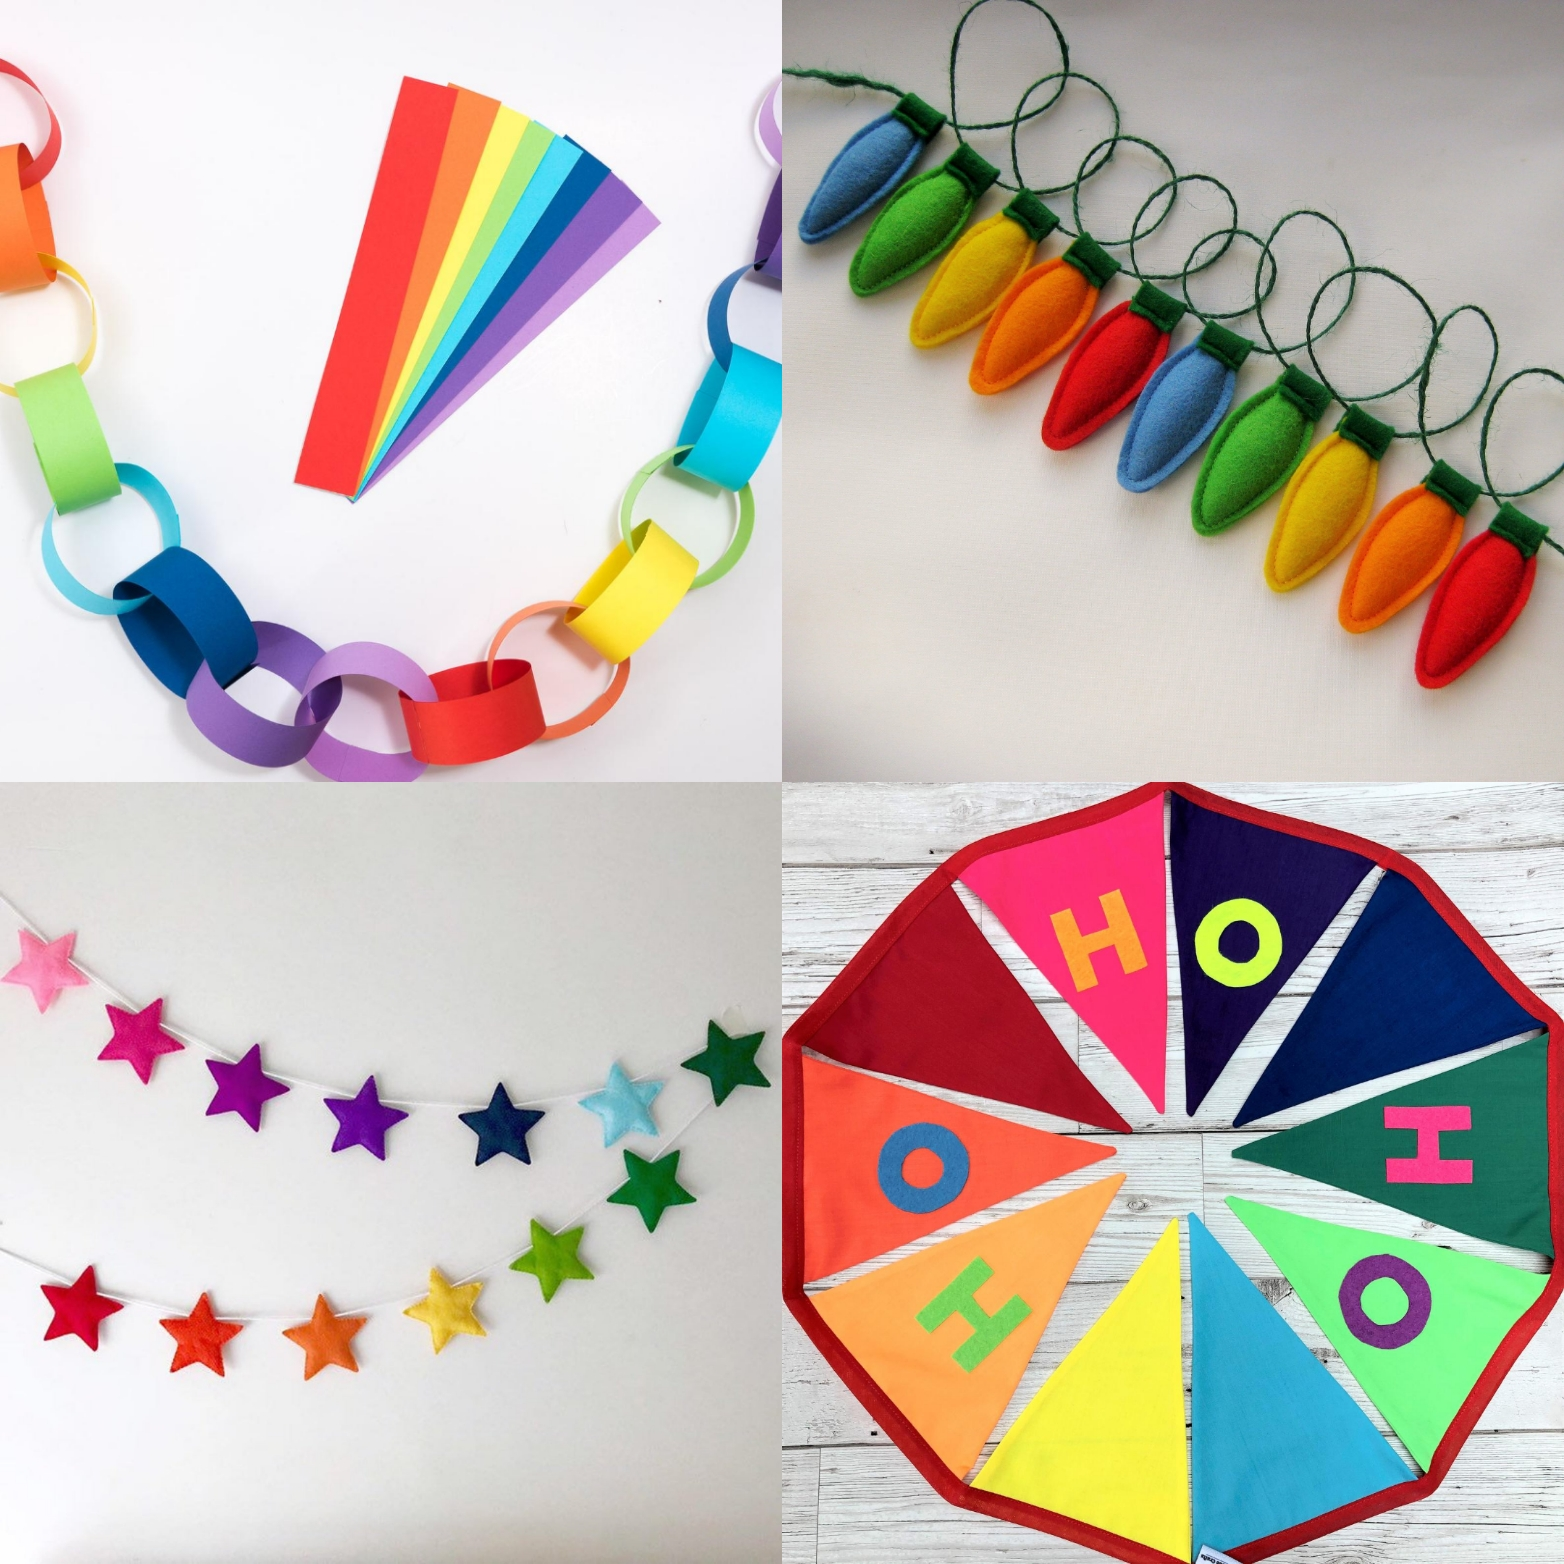 Merry rainbow Christmas Etsy garlands | Hello! Hooray!